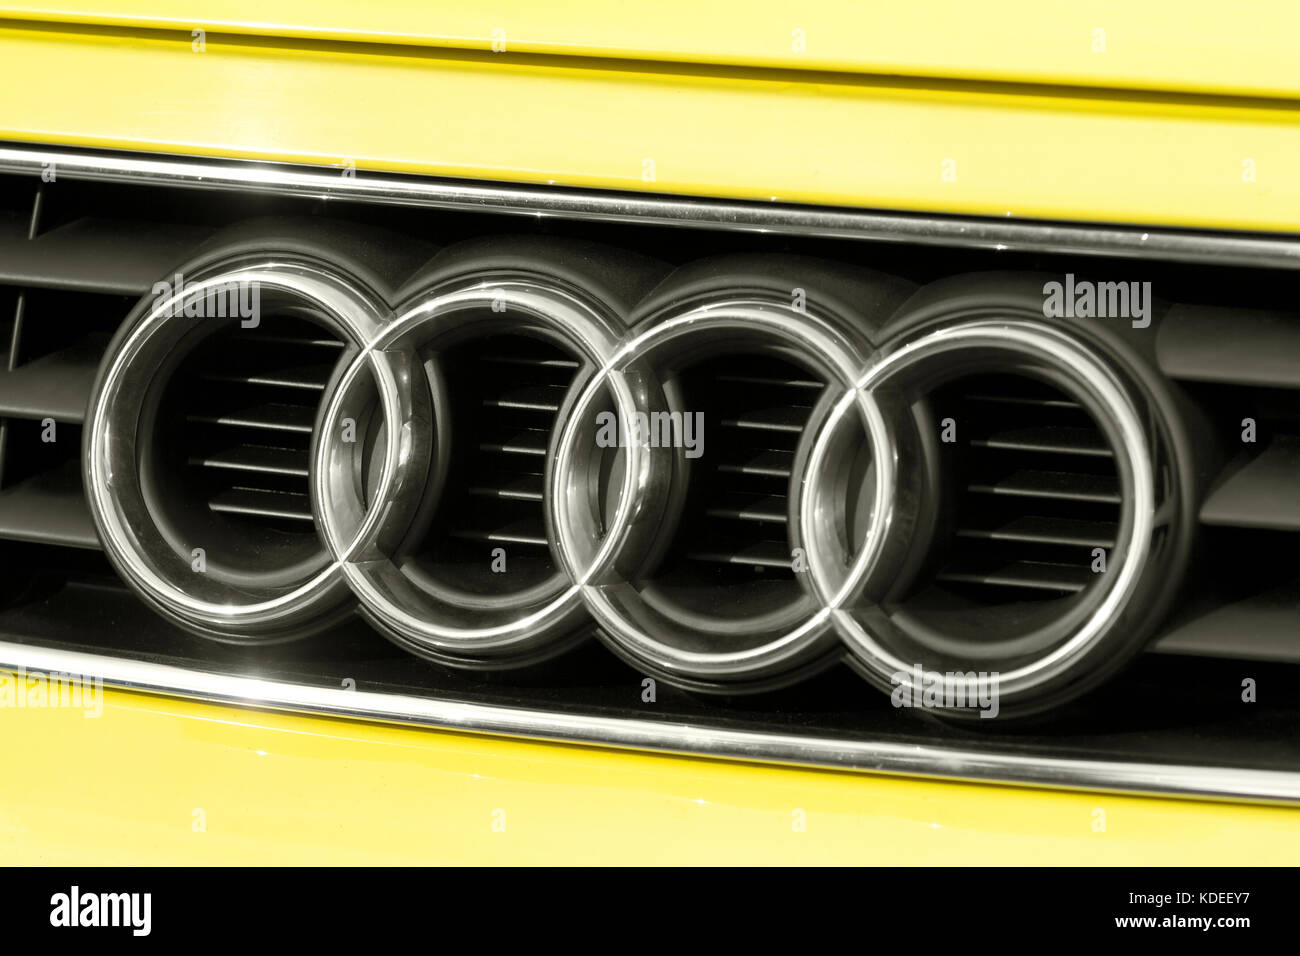 audi car symbol stock photos amp audi car symbol stock